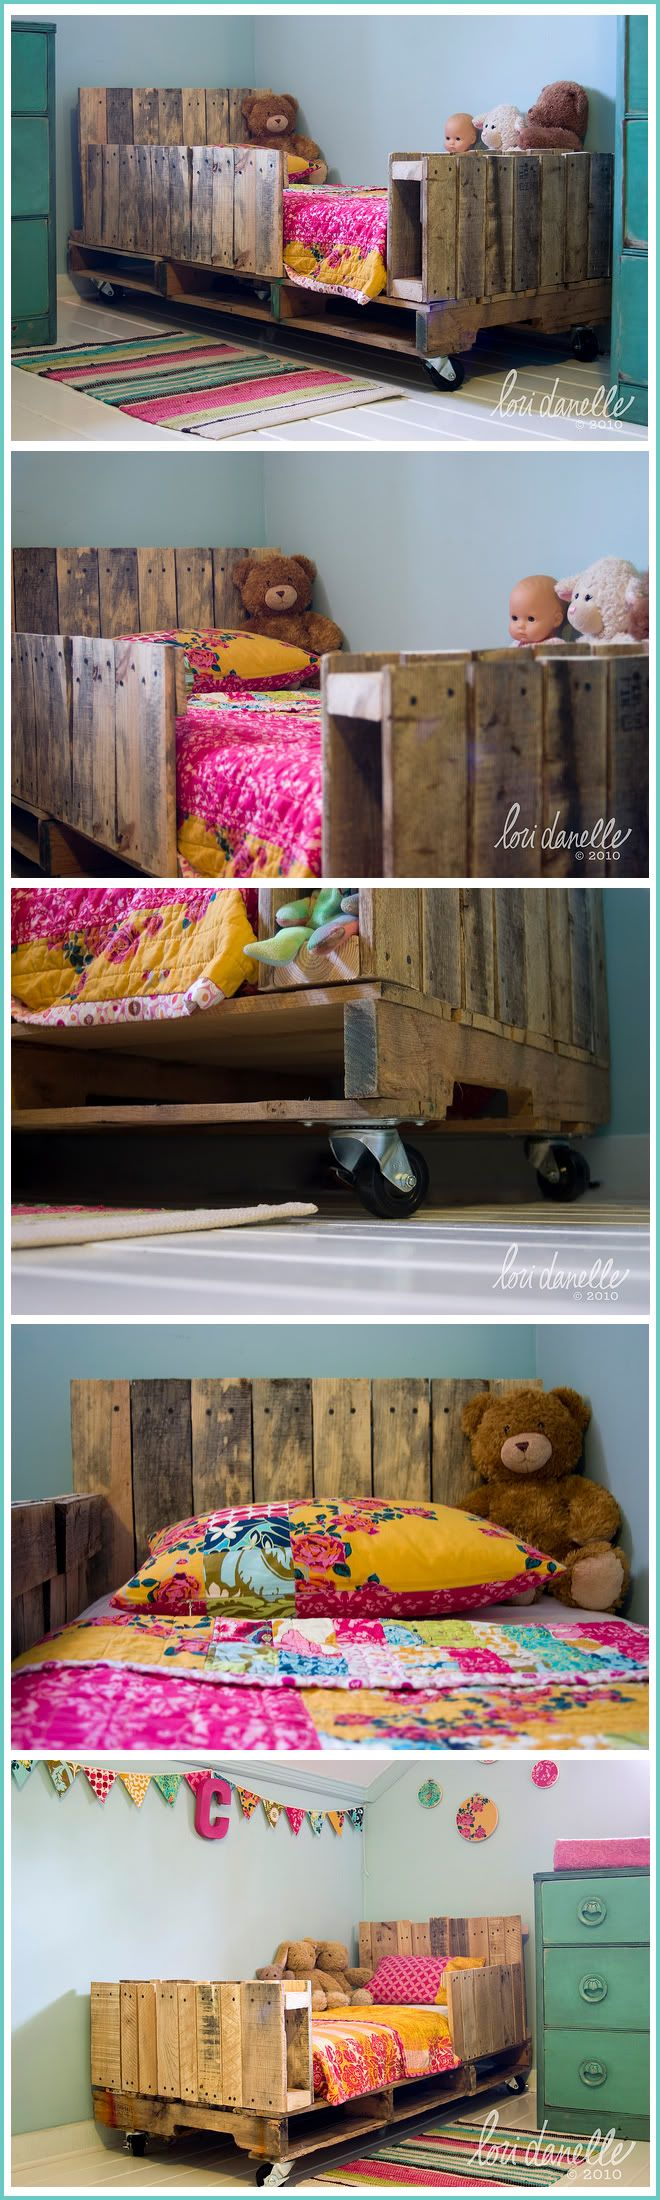 house 09 blog: mom  A little girl bed made out of pallets.  Just for your creative mind, @Stacey Grab